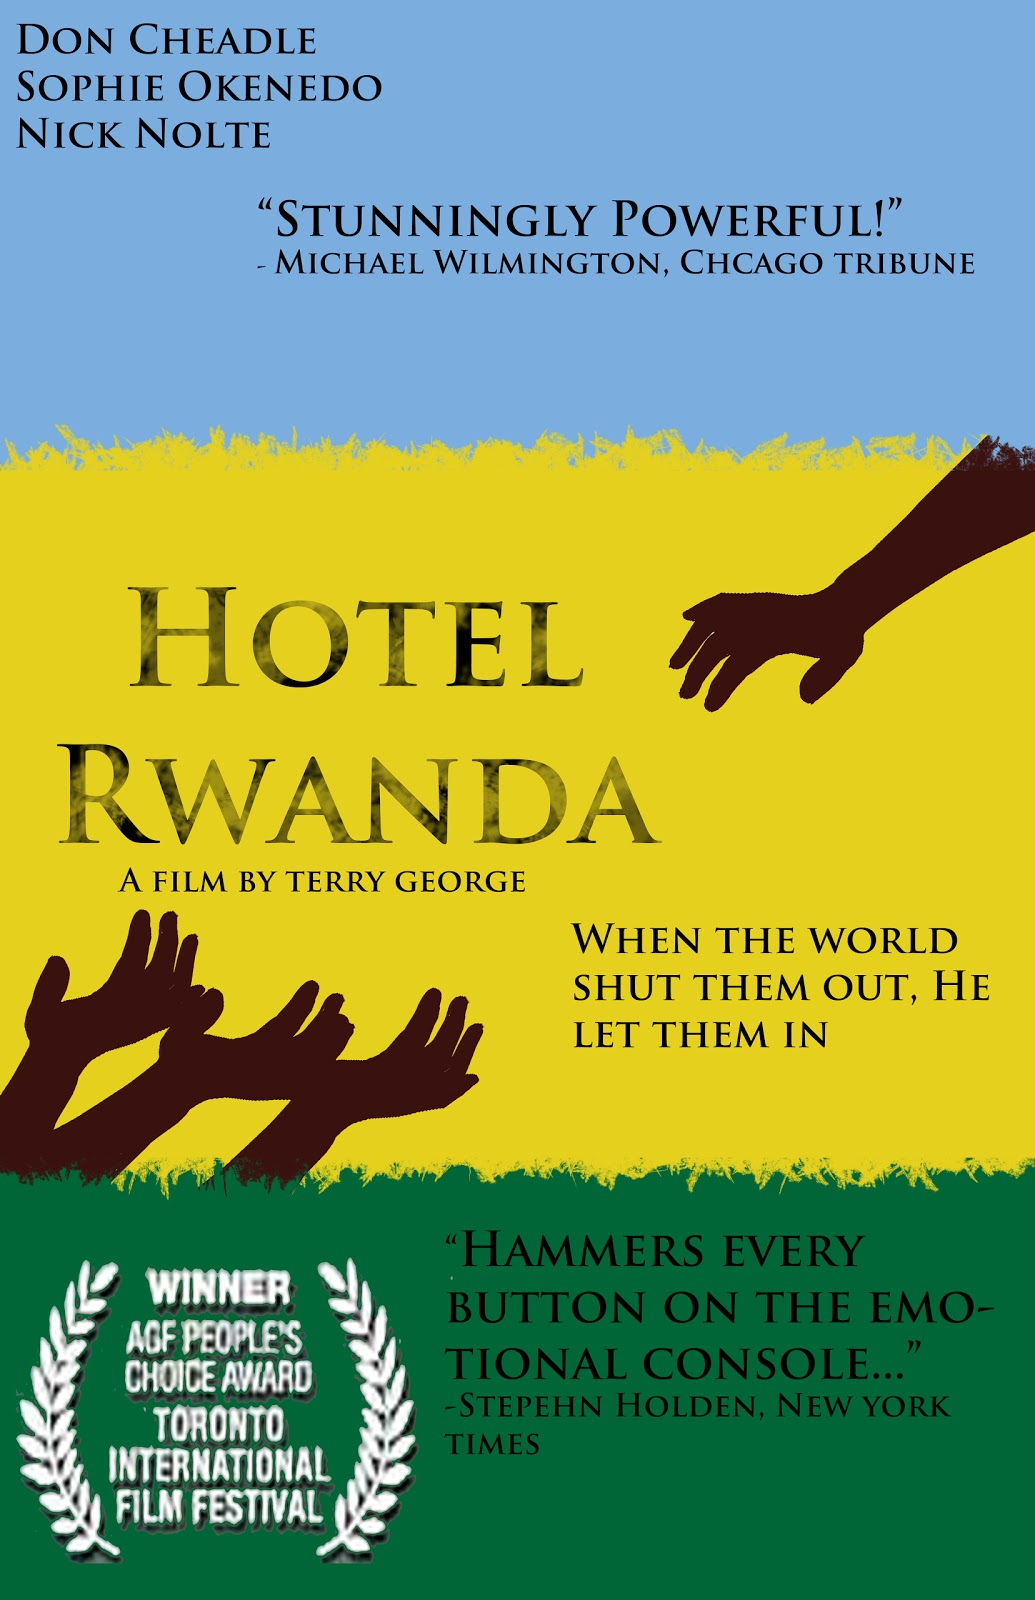 hotel rwanda review essay psycho essay psycho essay psycho  hotel rwanda movie review essay will write your essaysfor money galleryhip com hotel rwanda